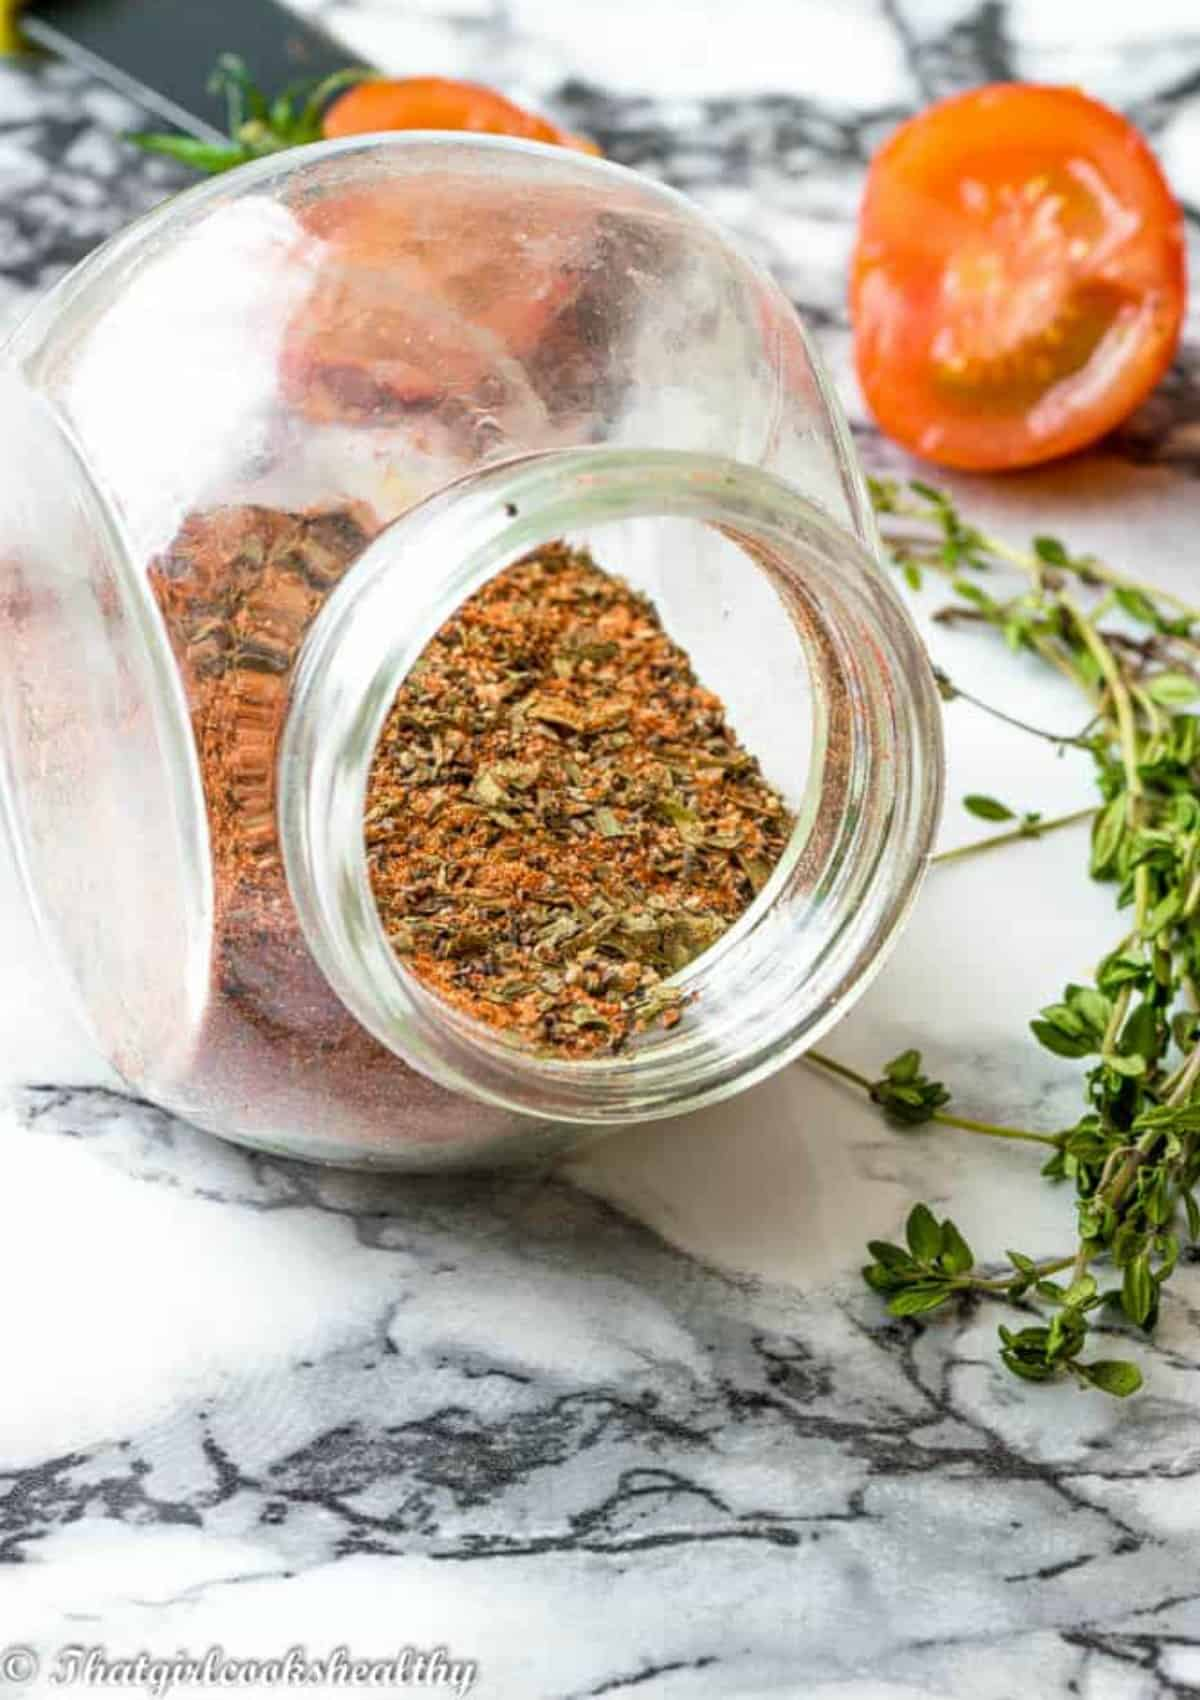 seasoning in an open jar